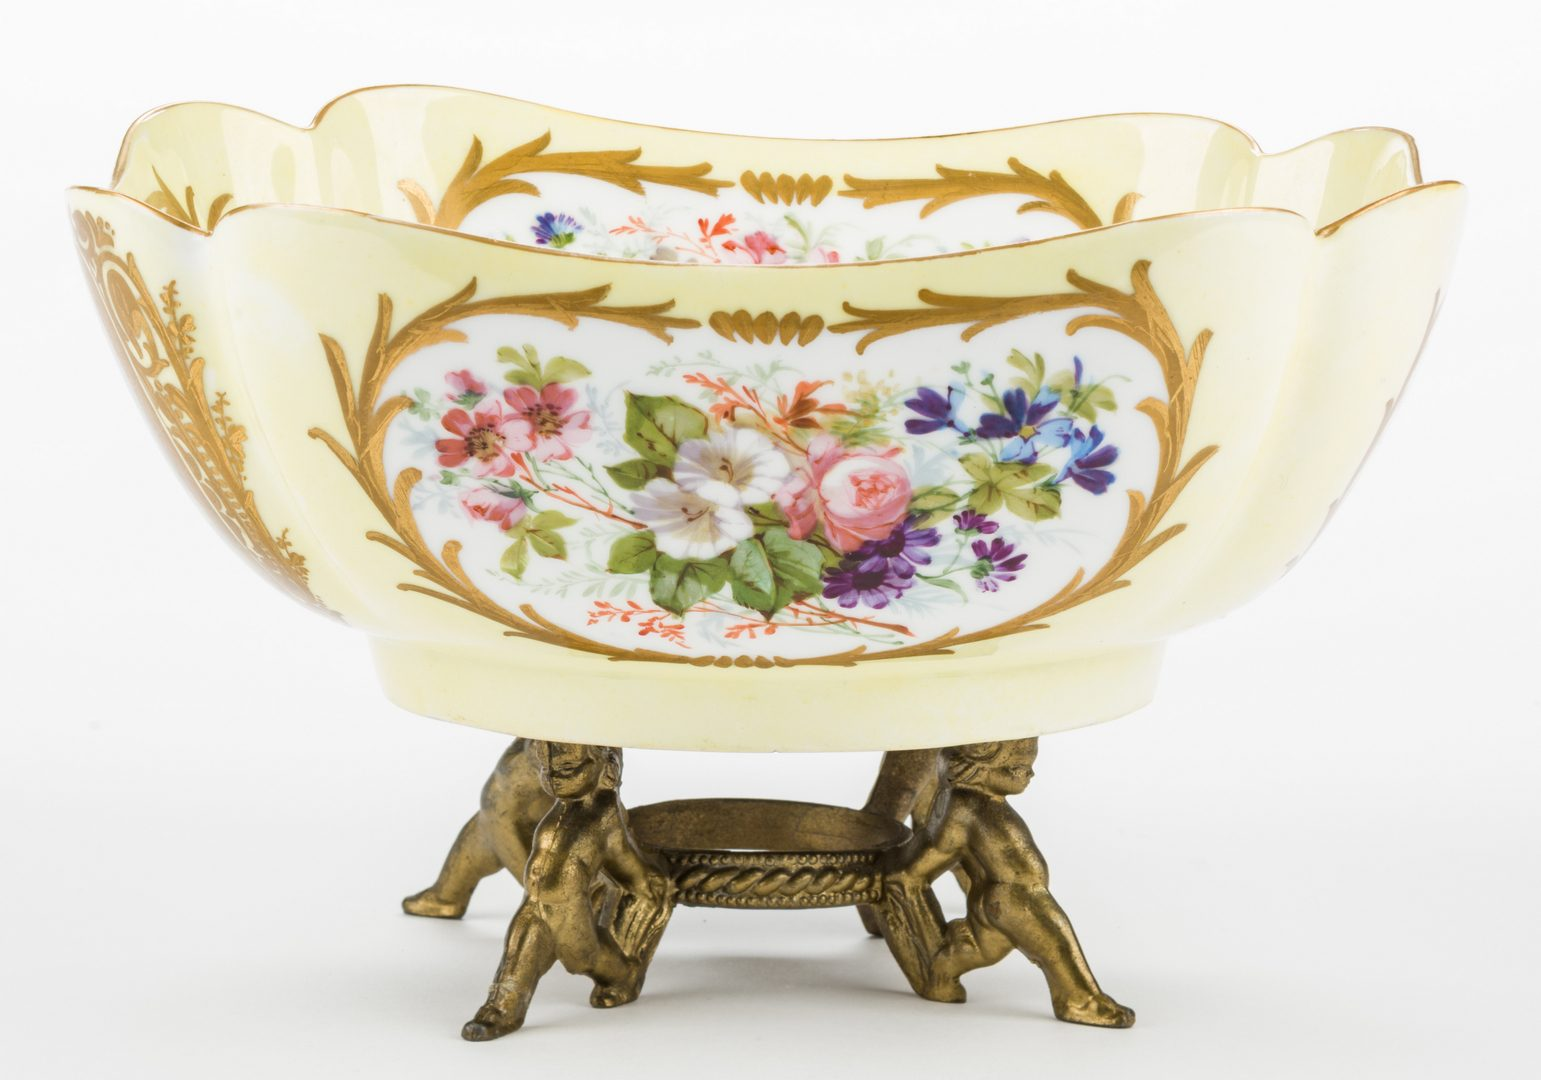 Lot 326: Sevres Chateau Tuileries Plates & Fruit Bowl, 5 items